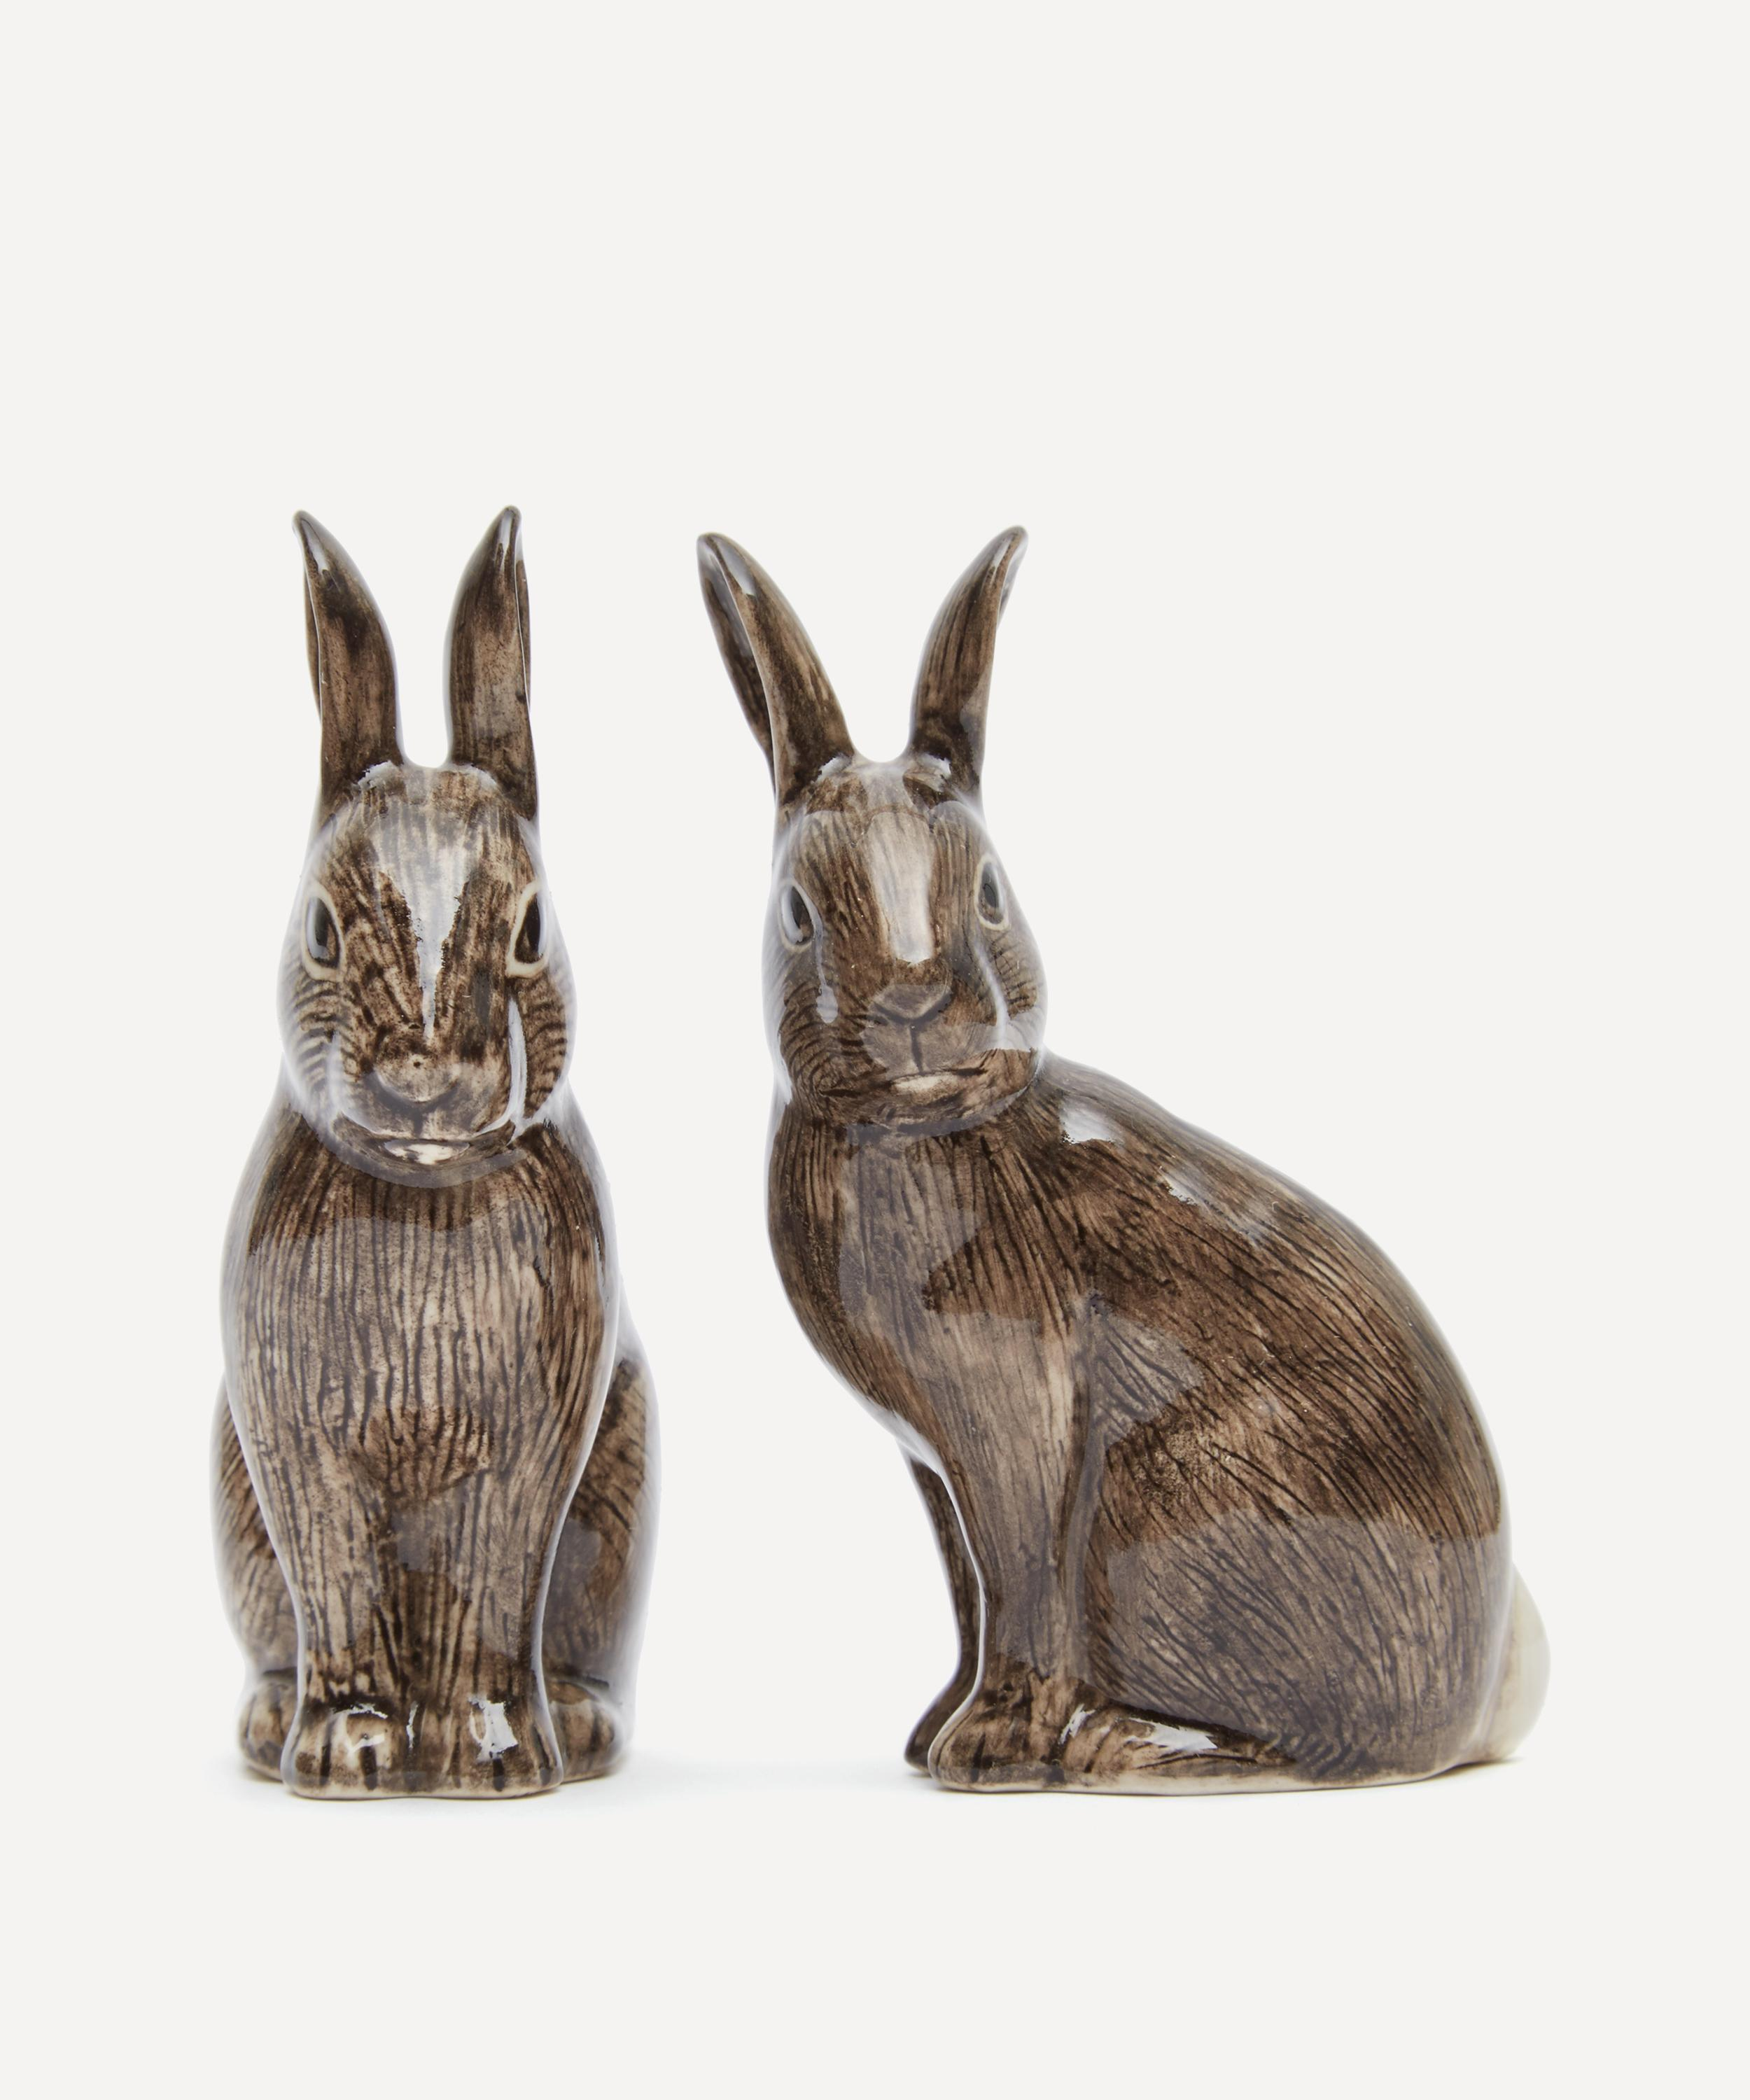 a7a360caec6 Wild Rabbit Salt and Pepper Shakers